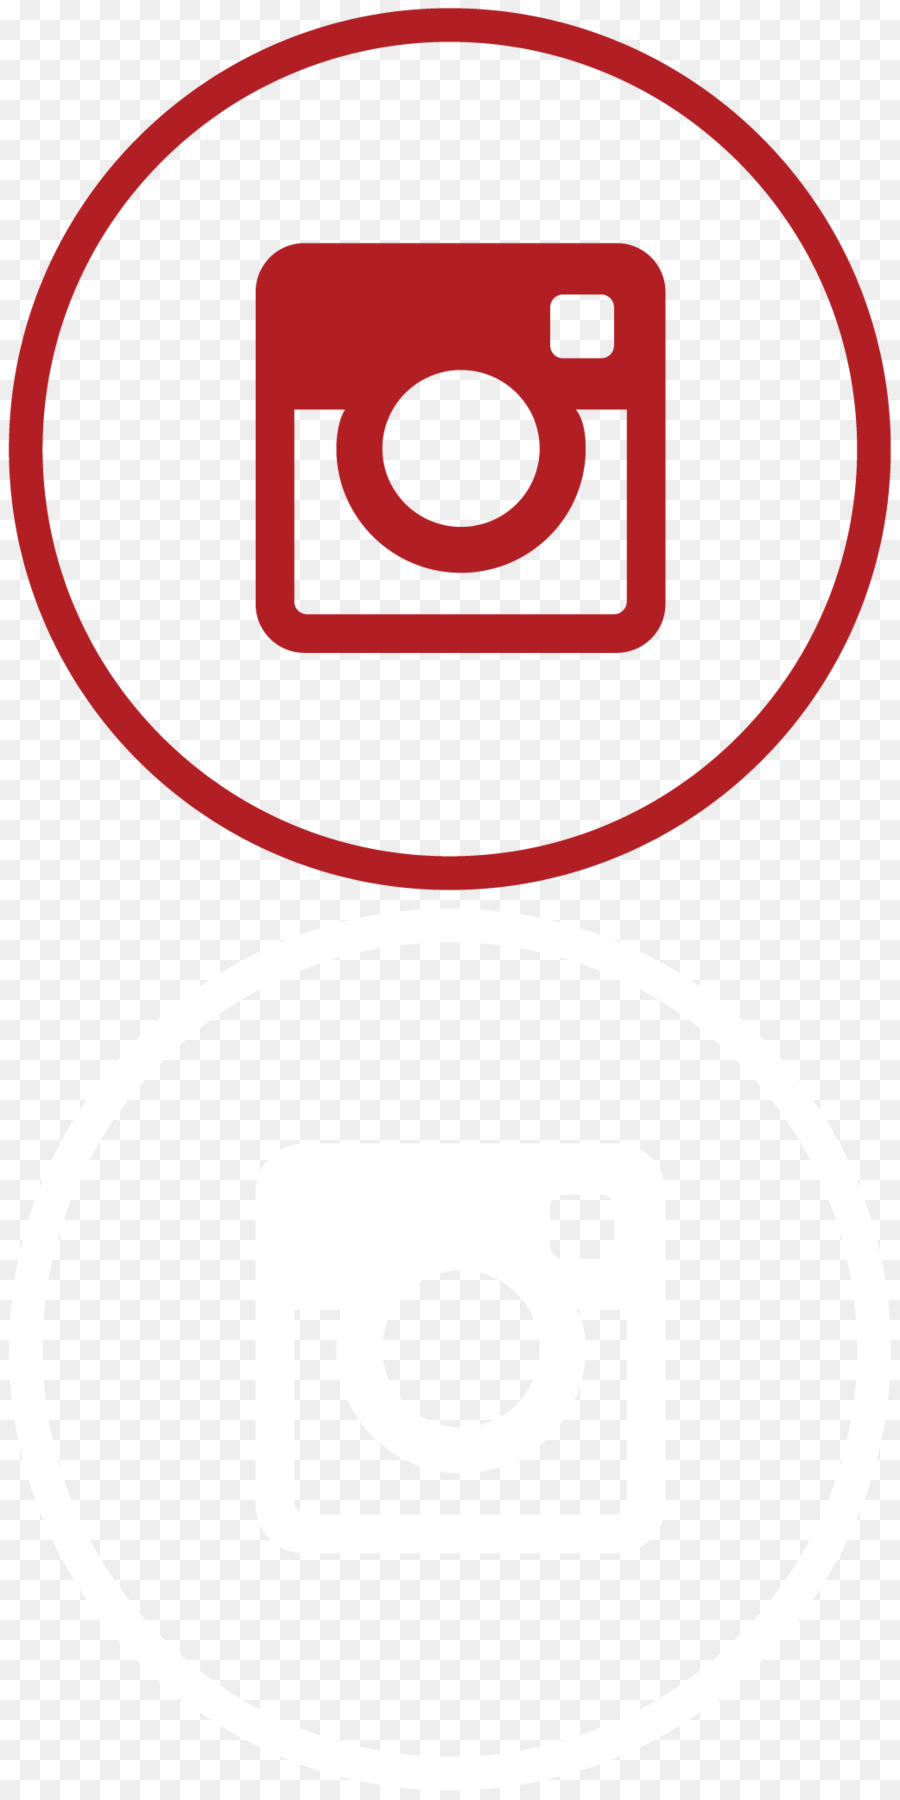 Instagram Icon White Png #175207 - Free Icons Library